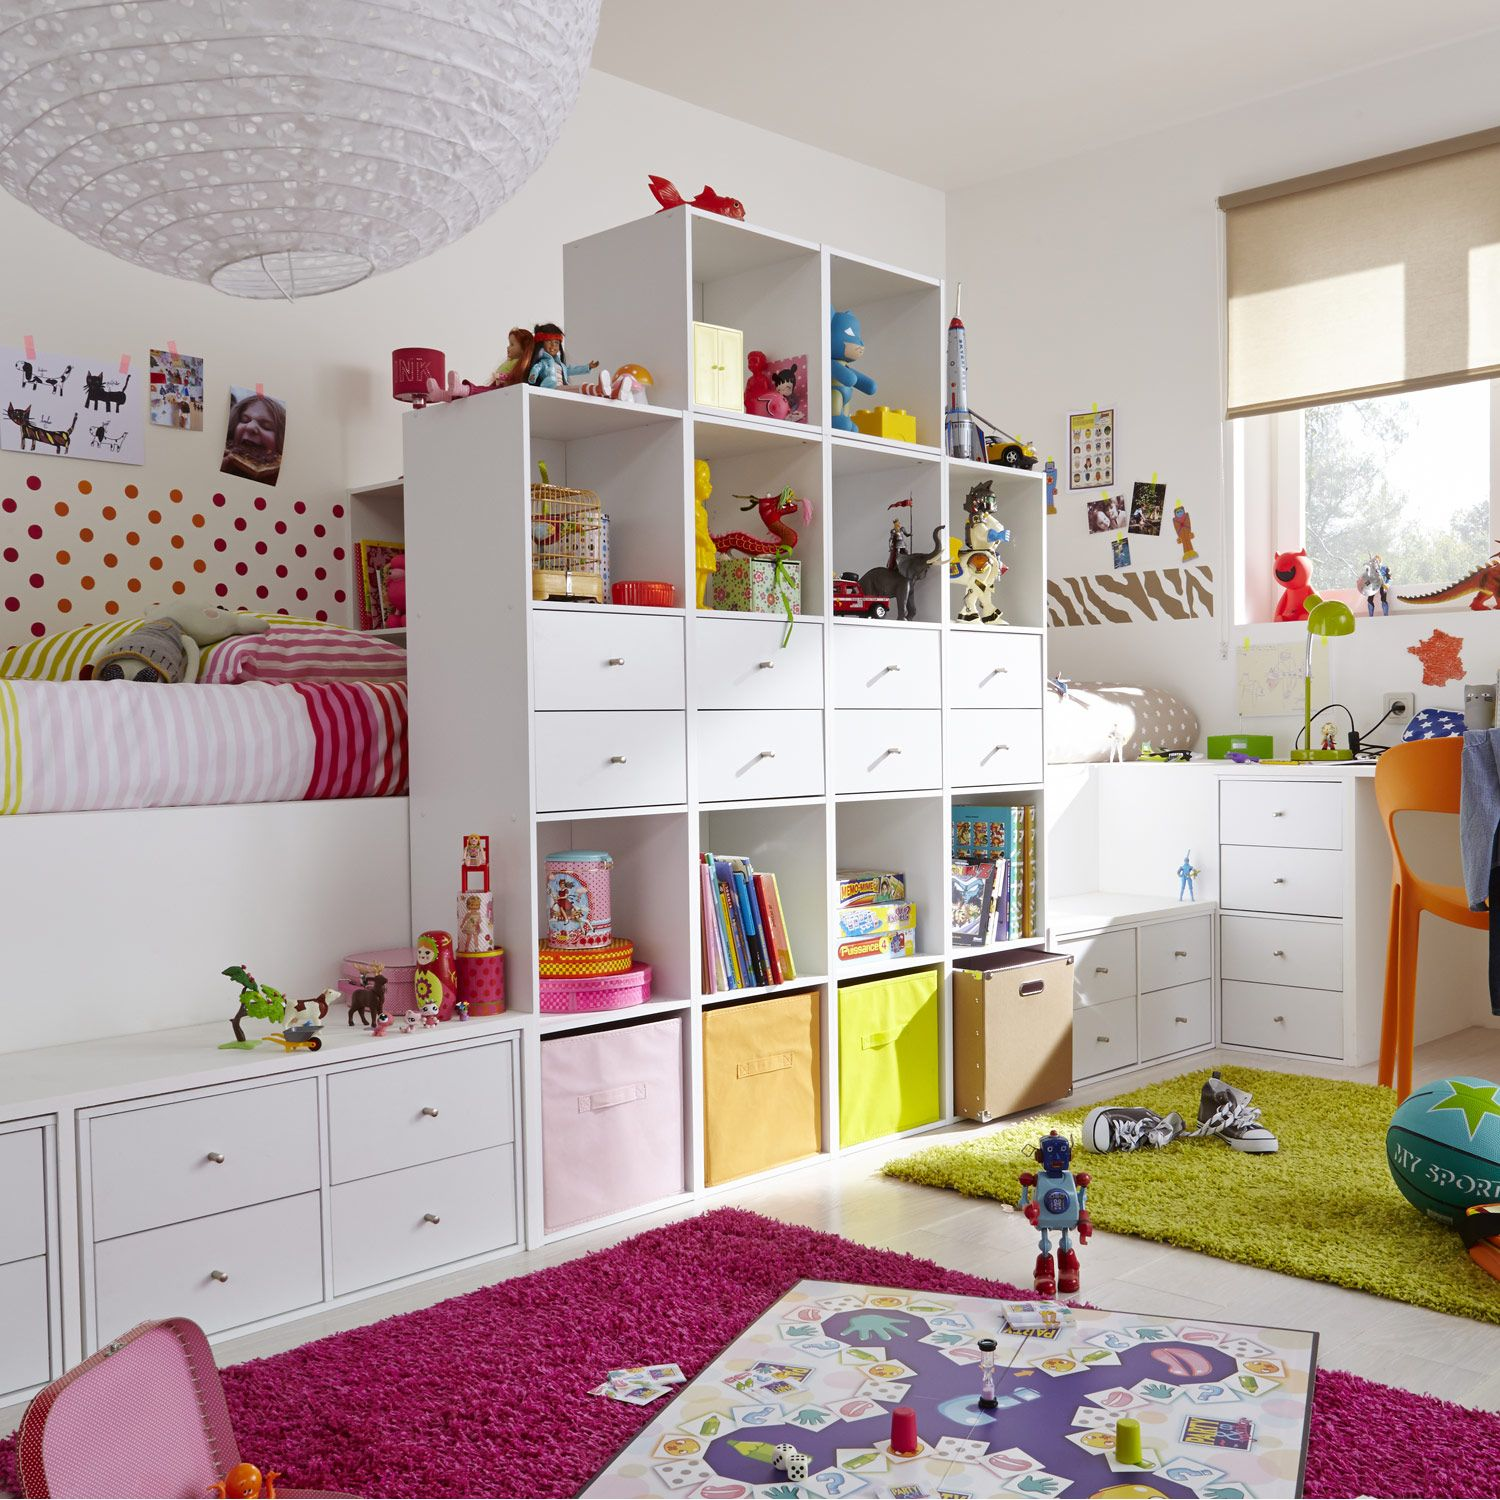 Am nagement d coratif multikaz 32 chambre d 39 enfant leroy for Amenagement deco